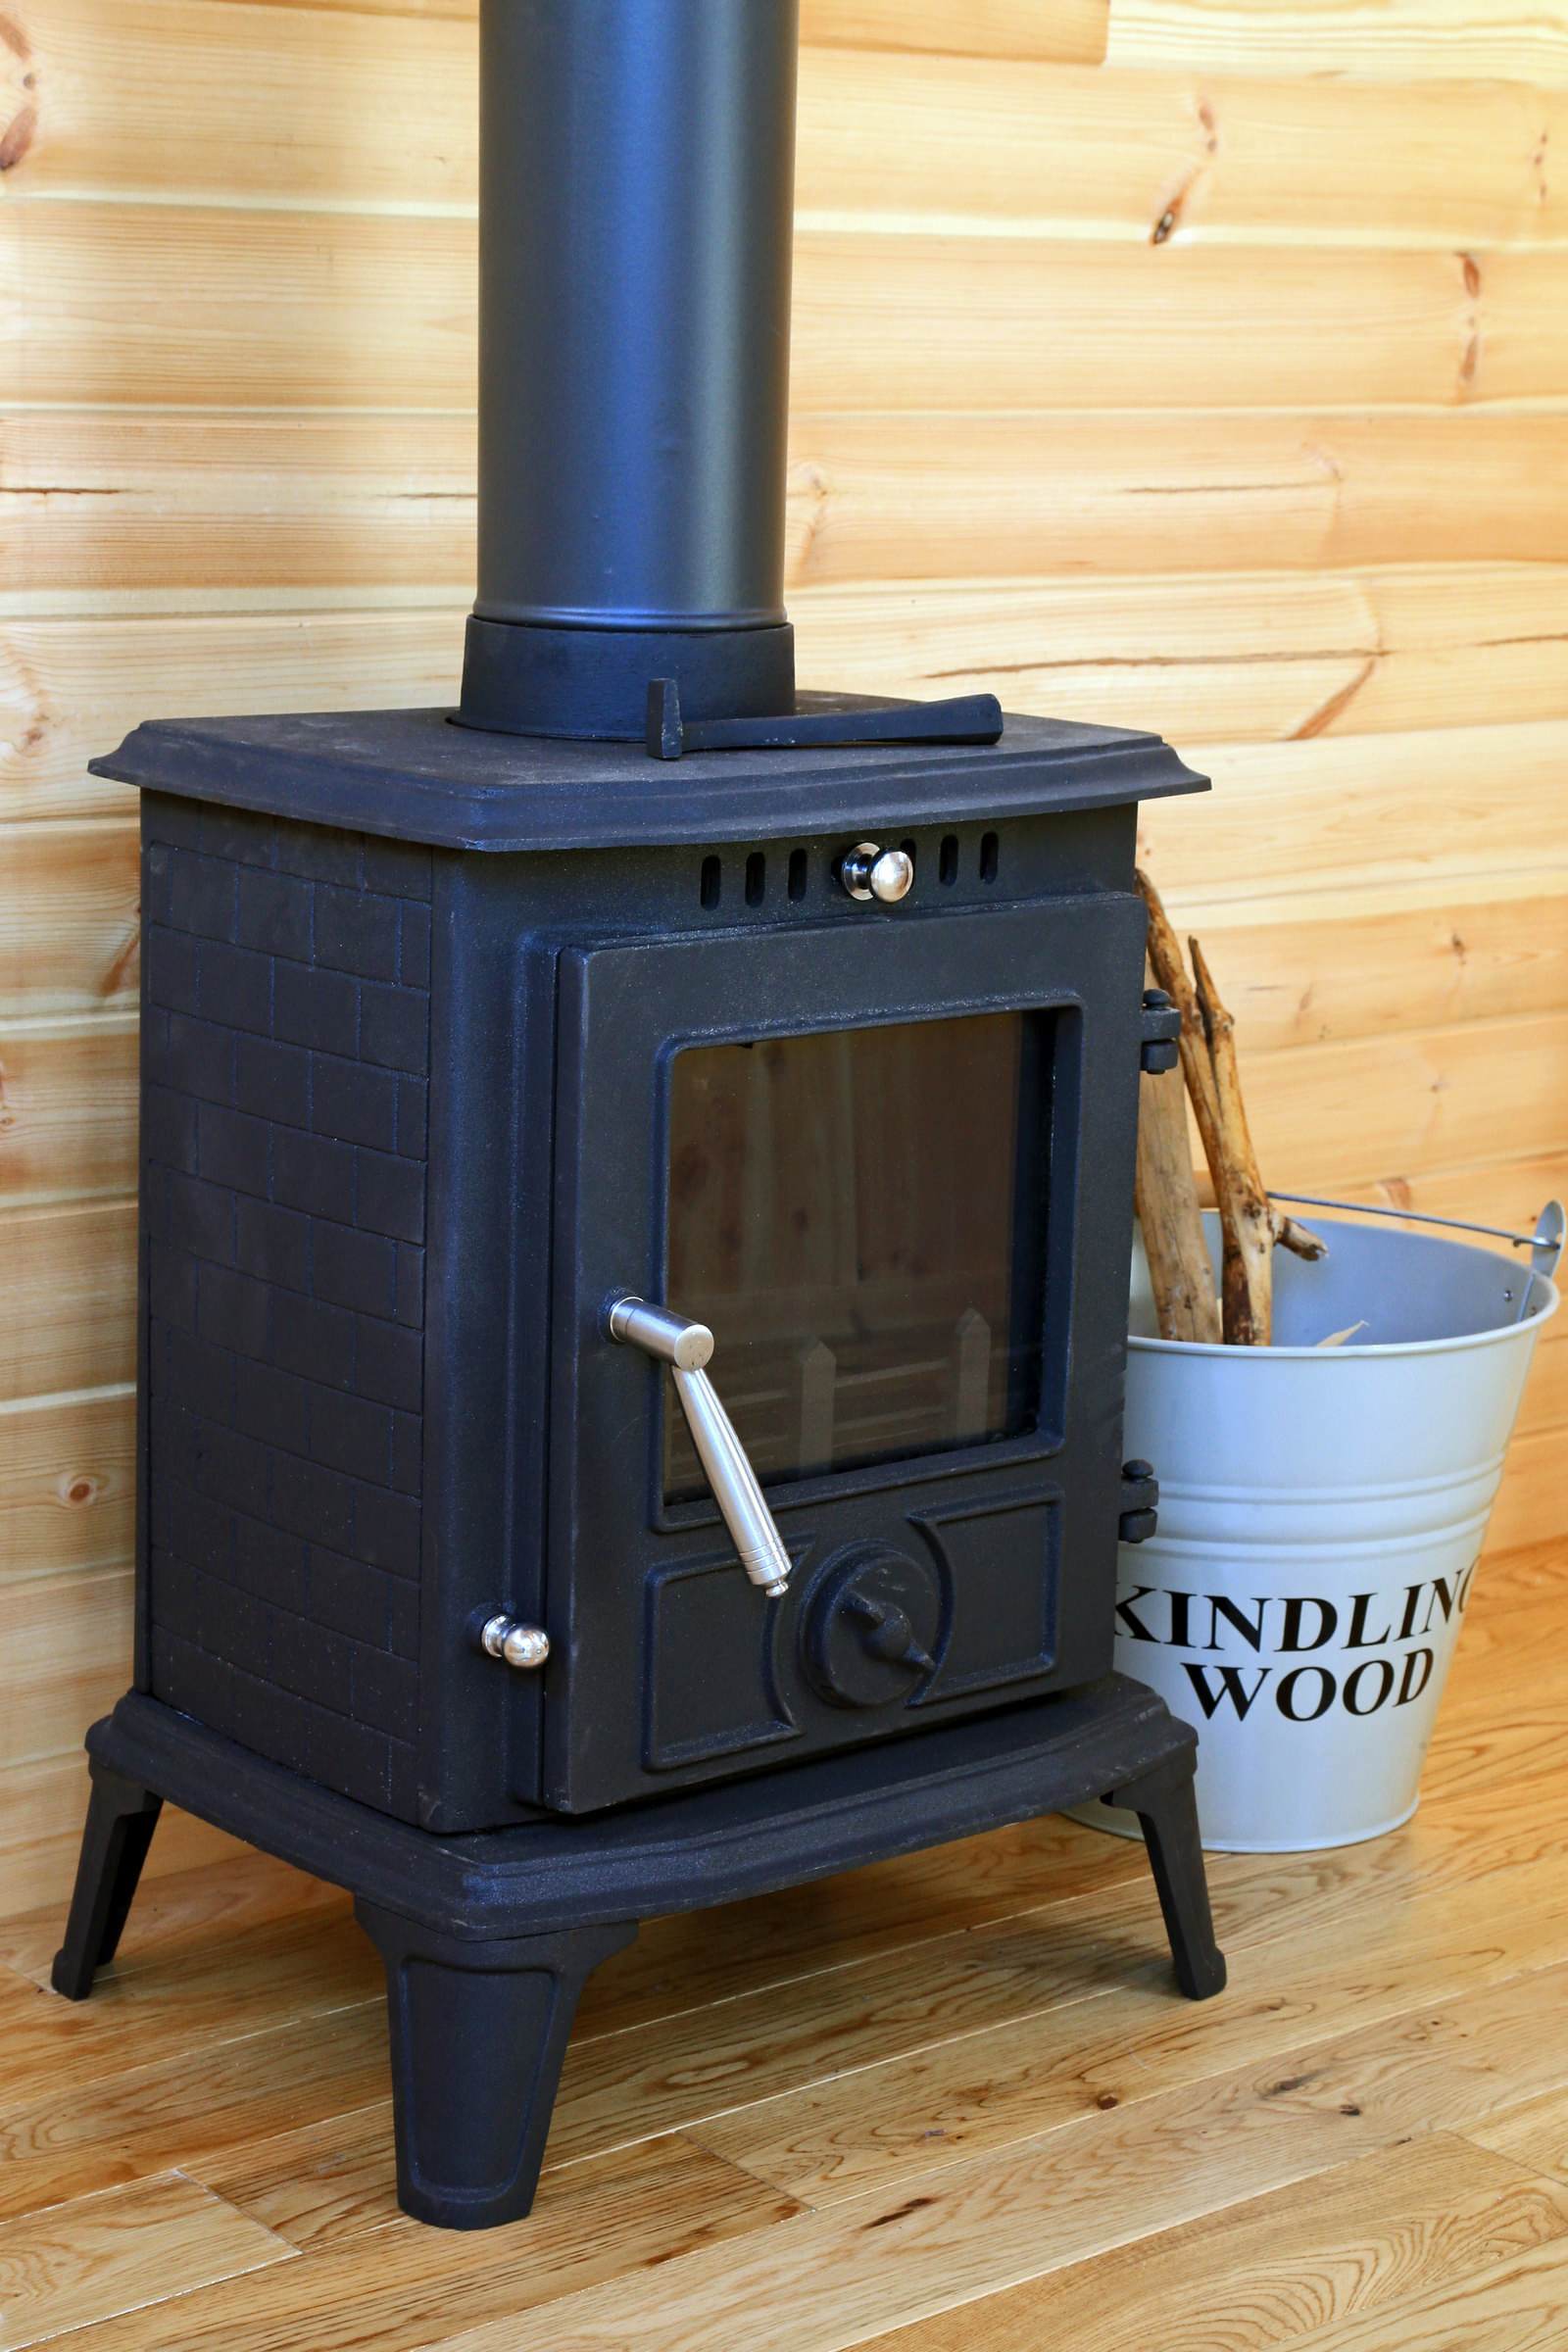 Estate Agency: Wood Stove